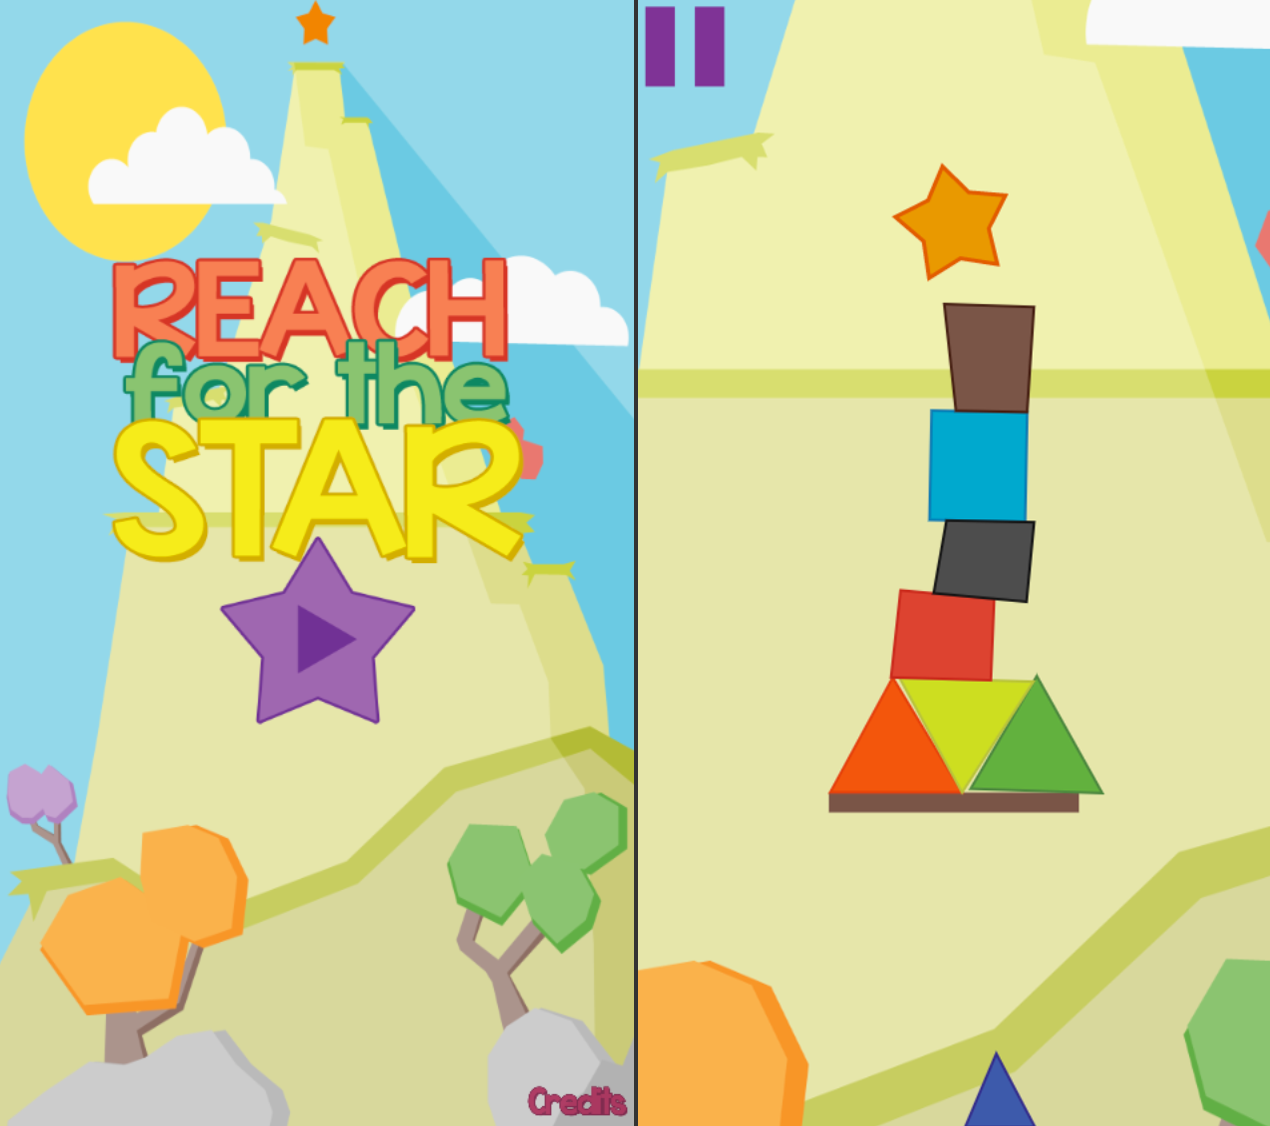 Reach for the Star screenshot 1